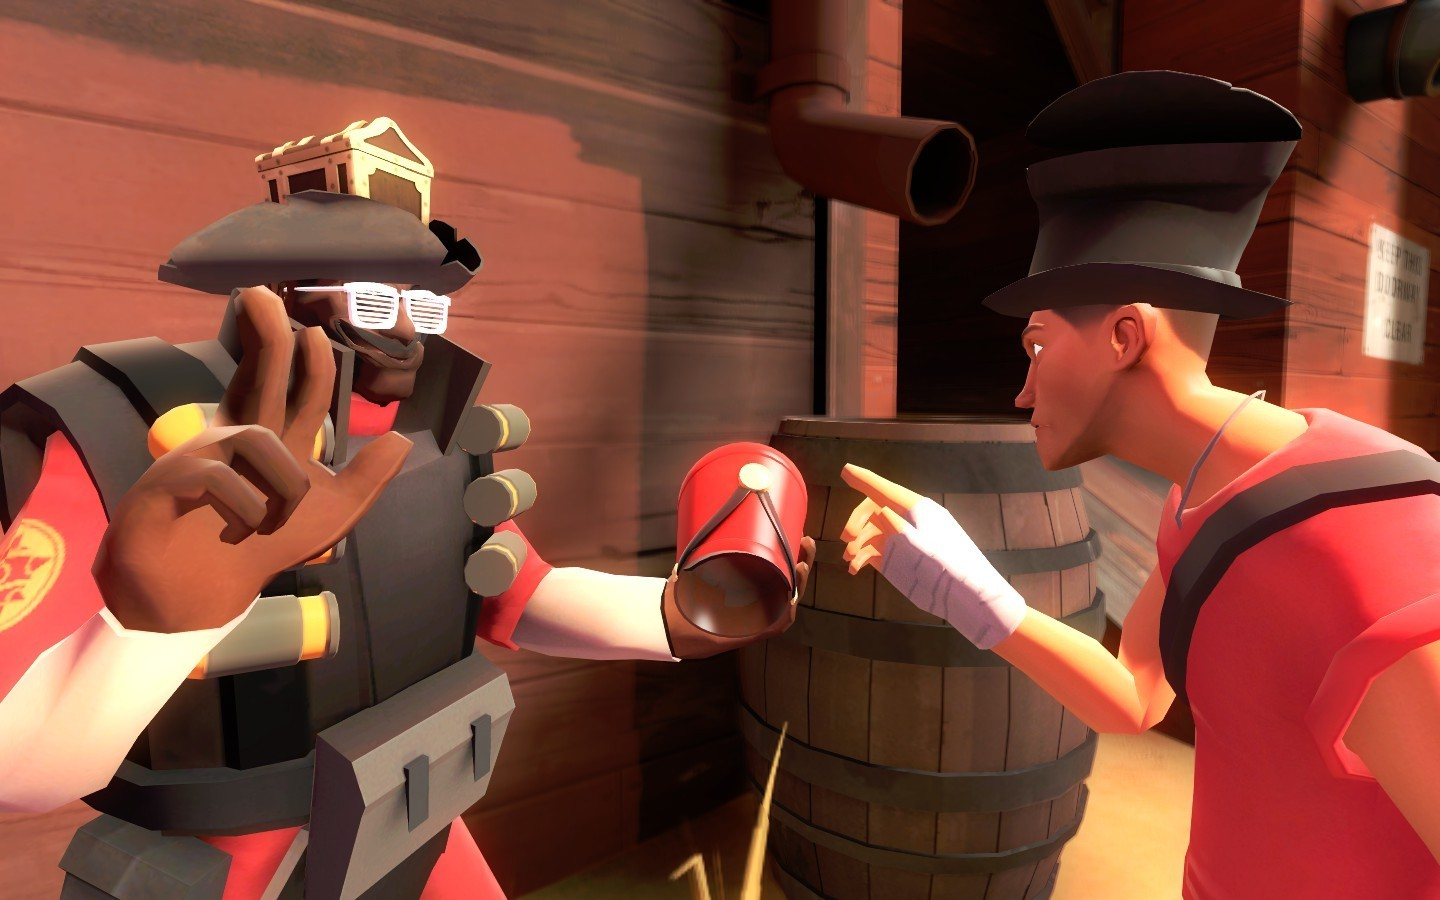 video games Scout TF2